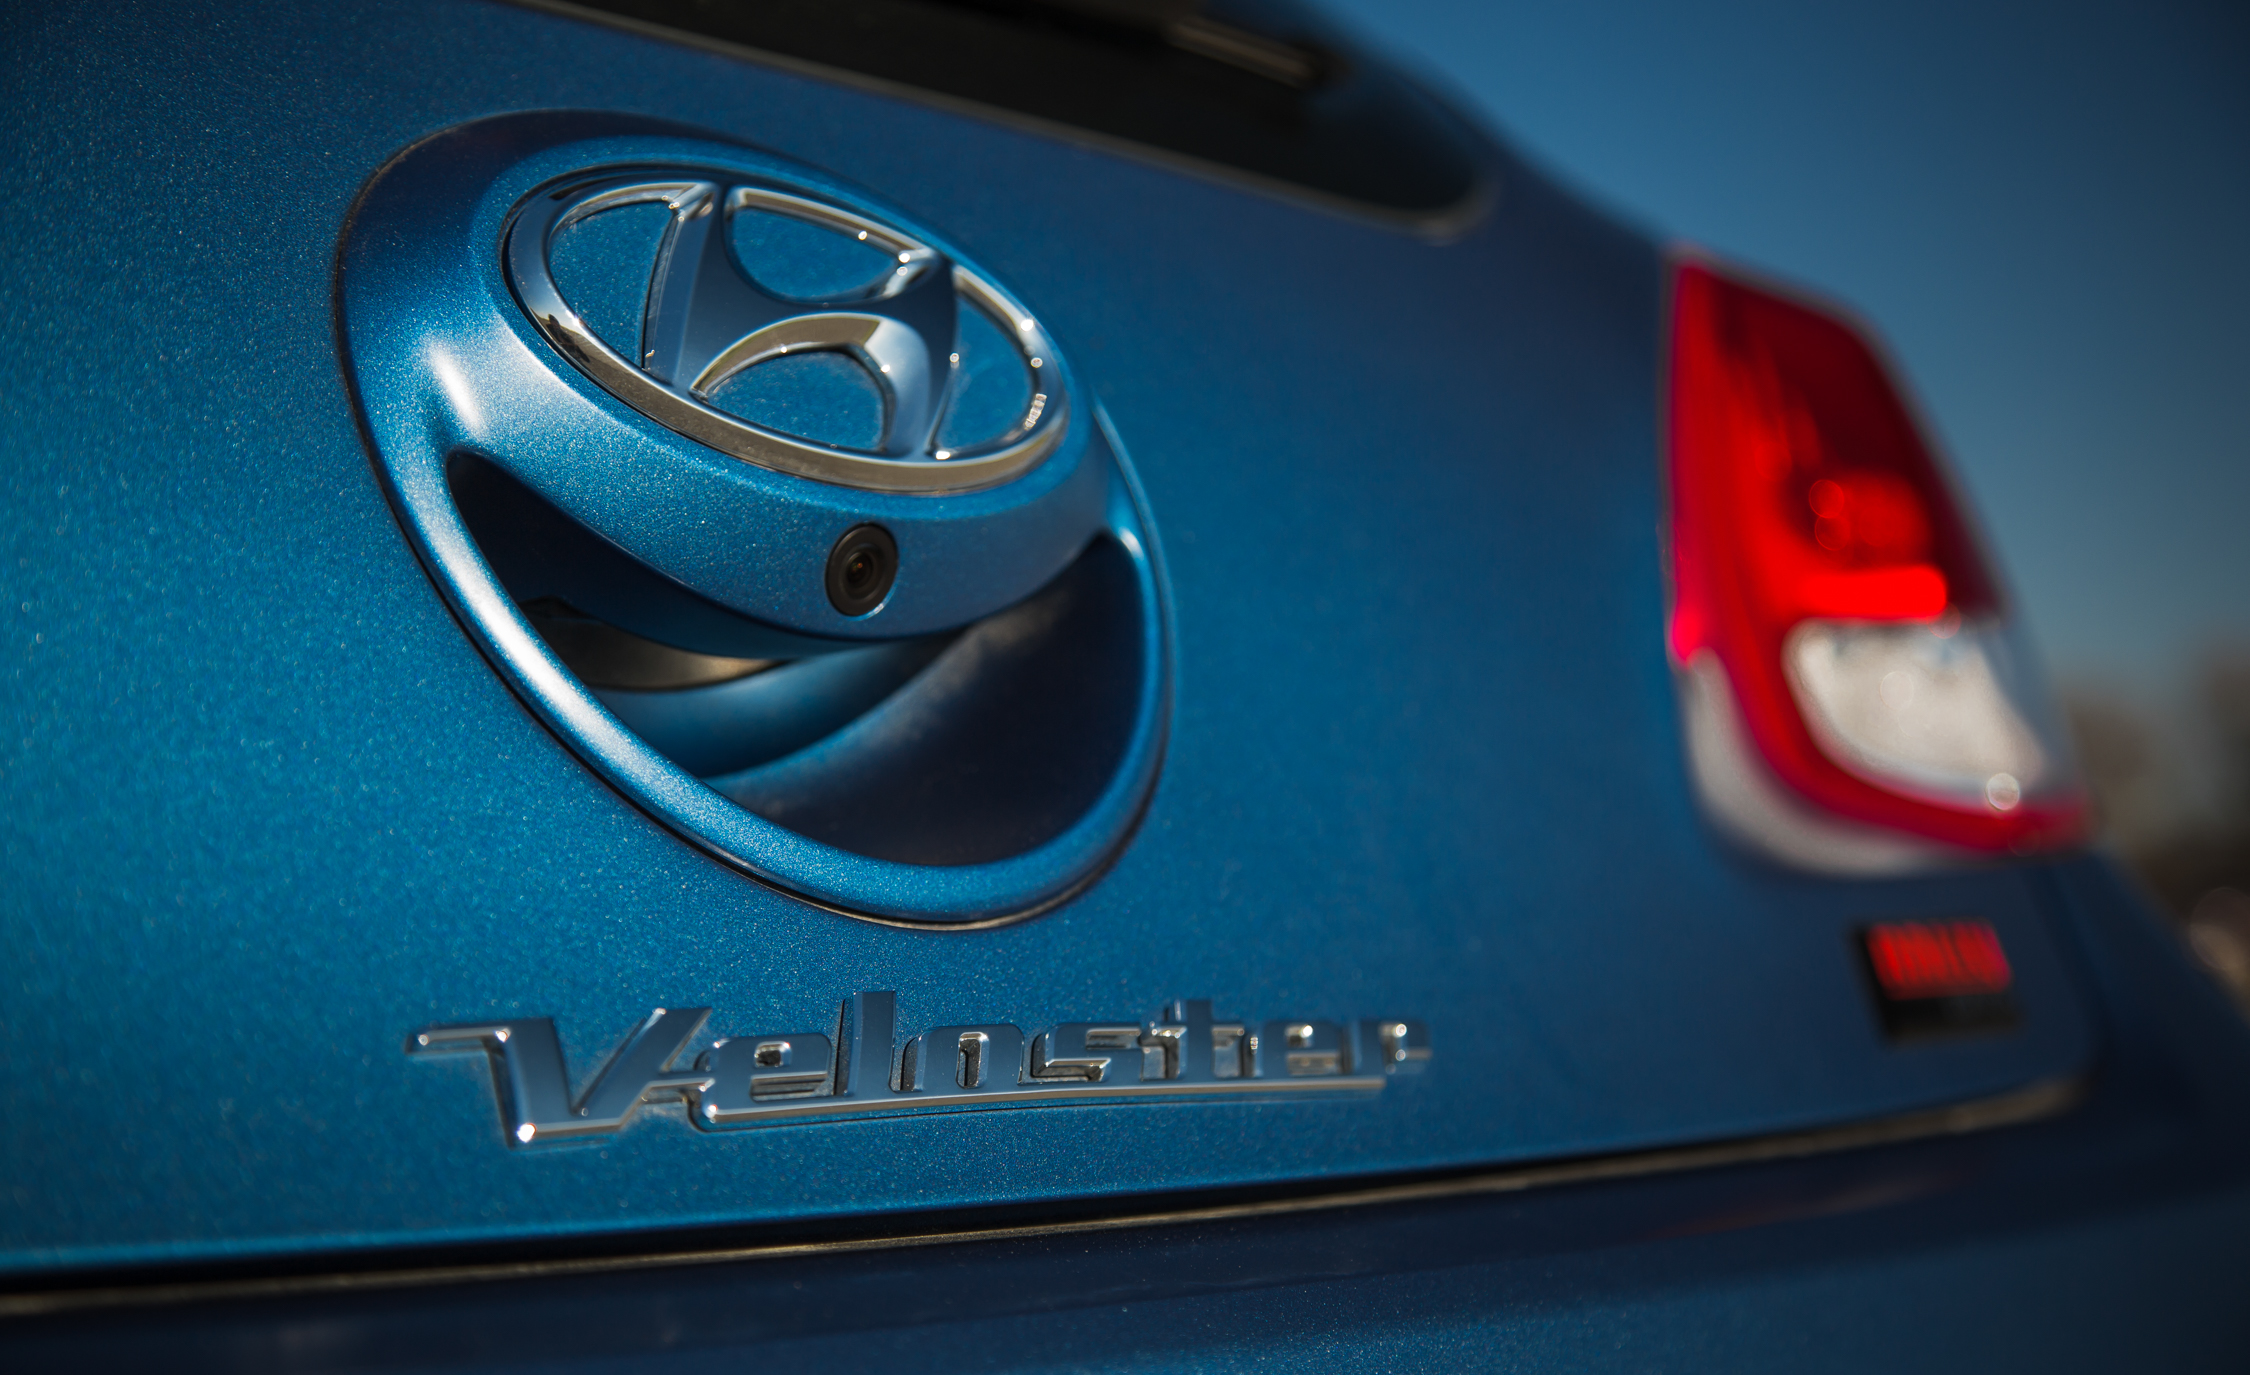 2016 Hyundai Veloster Turbo Rally Edition Exterior Badge Rear